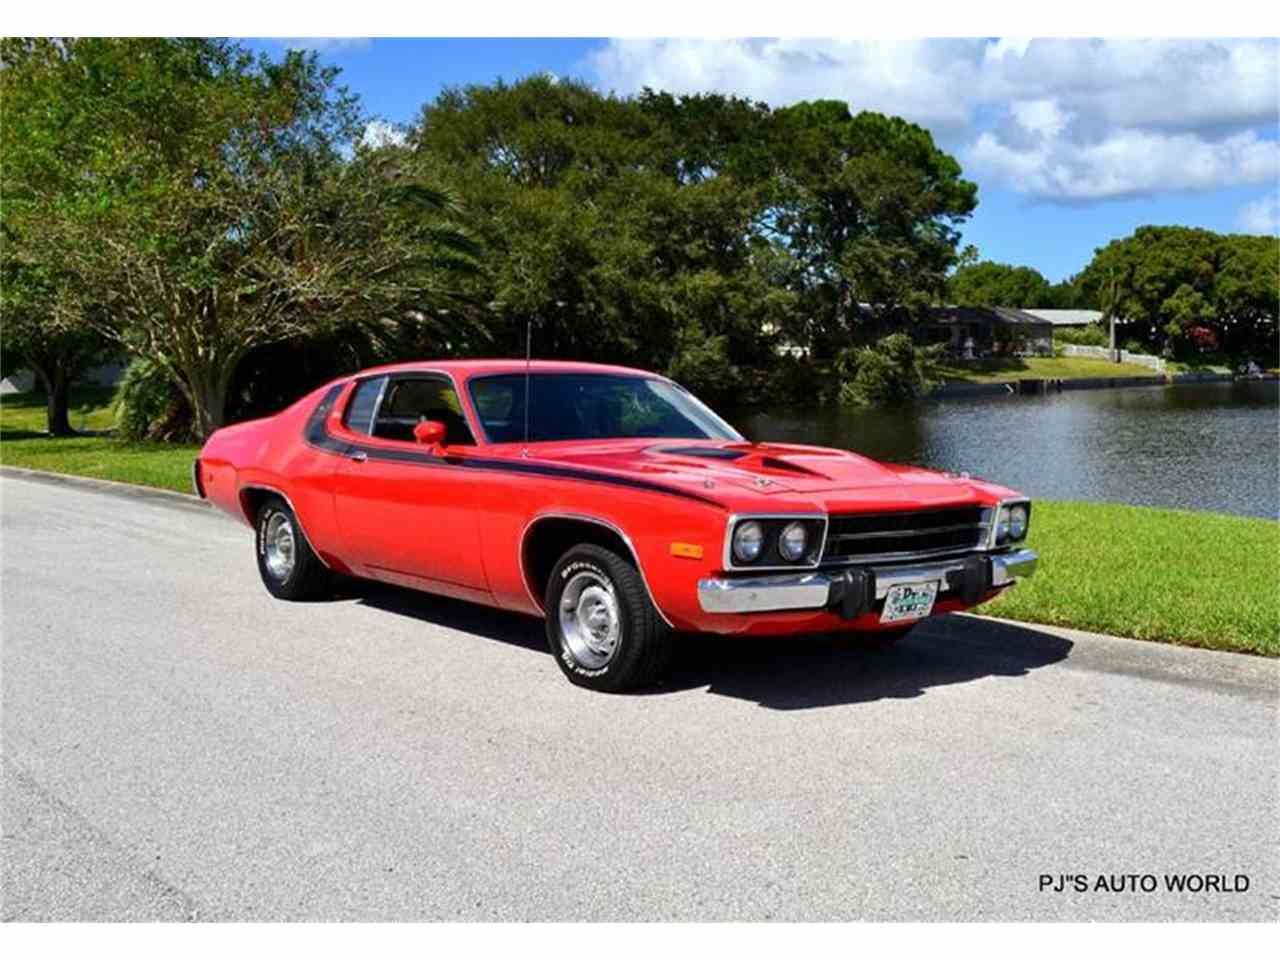 Disturbs The Peace With This 1968 Cherry Bomb Chevrolet Camaro likewise 1971 Ford Torino also What Is A Muscle Car further 1966 Gto Emblem in addition Custom Ford Mustang Fastback 1965. on classic muscle cars plymouth